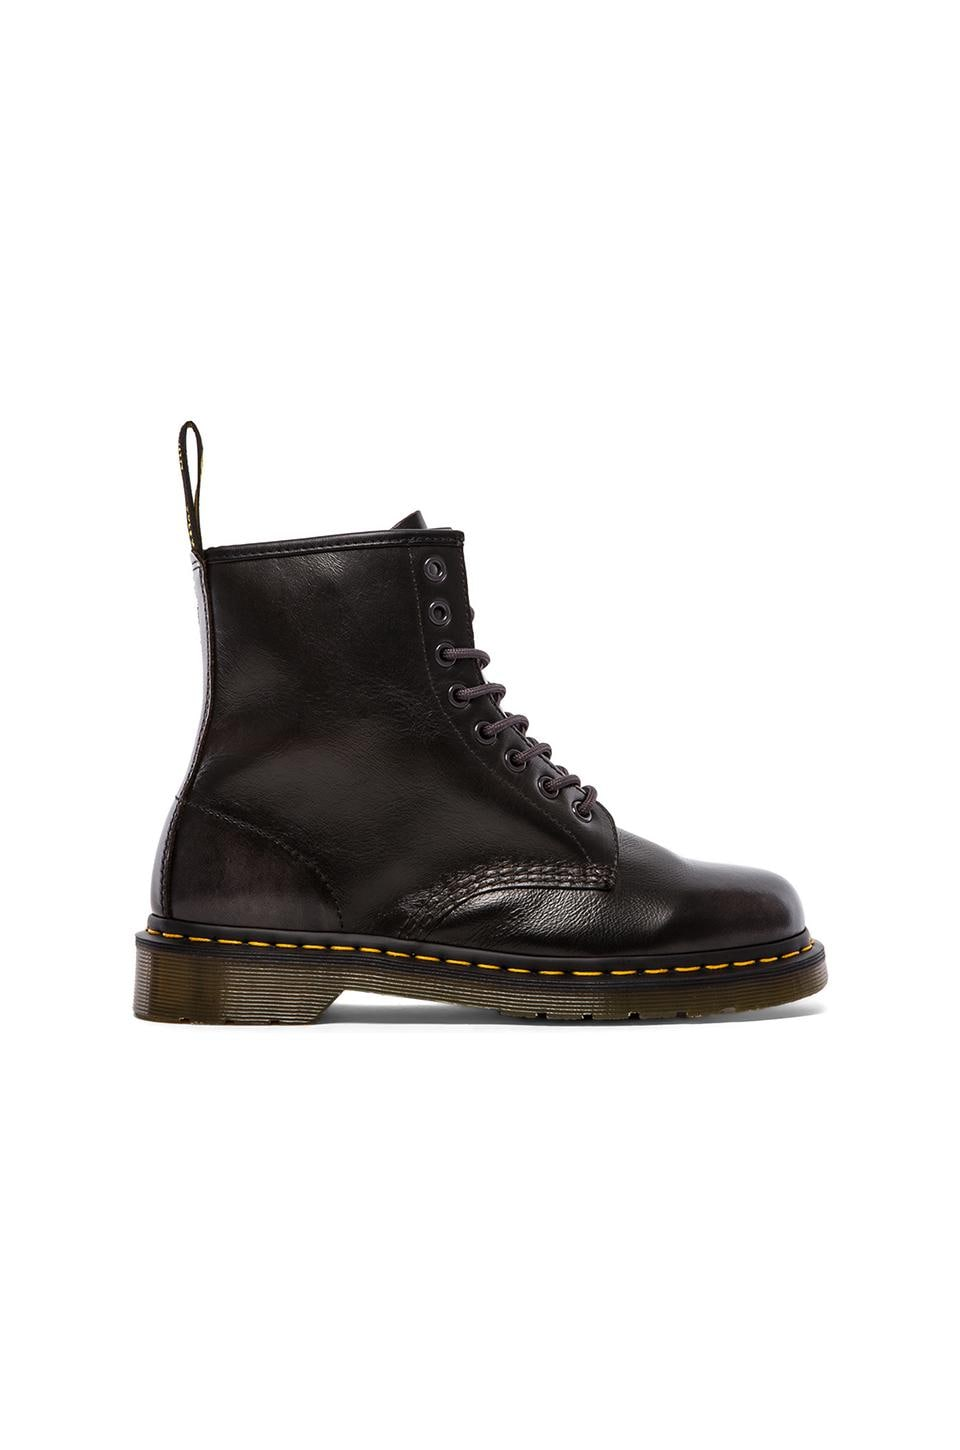 Dr. Martens 1460 8-Eye Boot in Charcoal